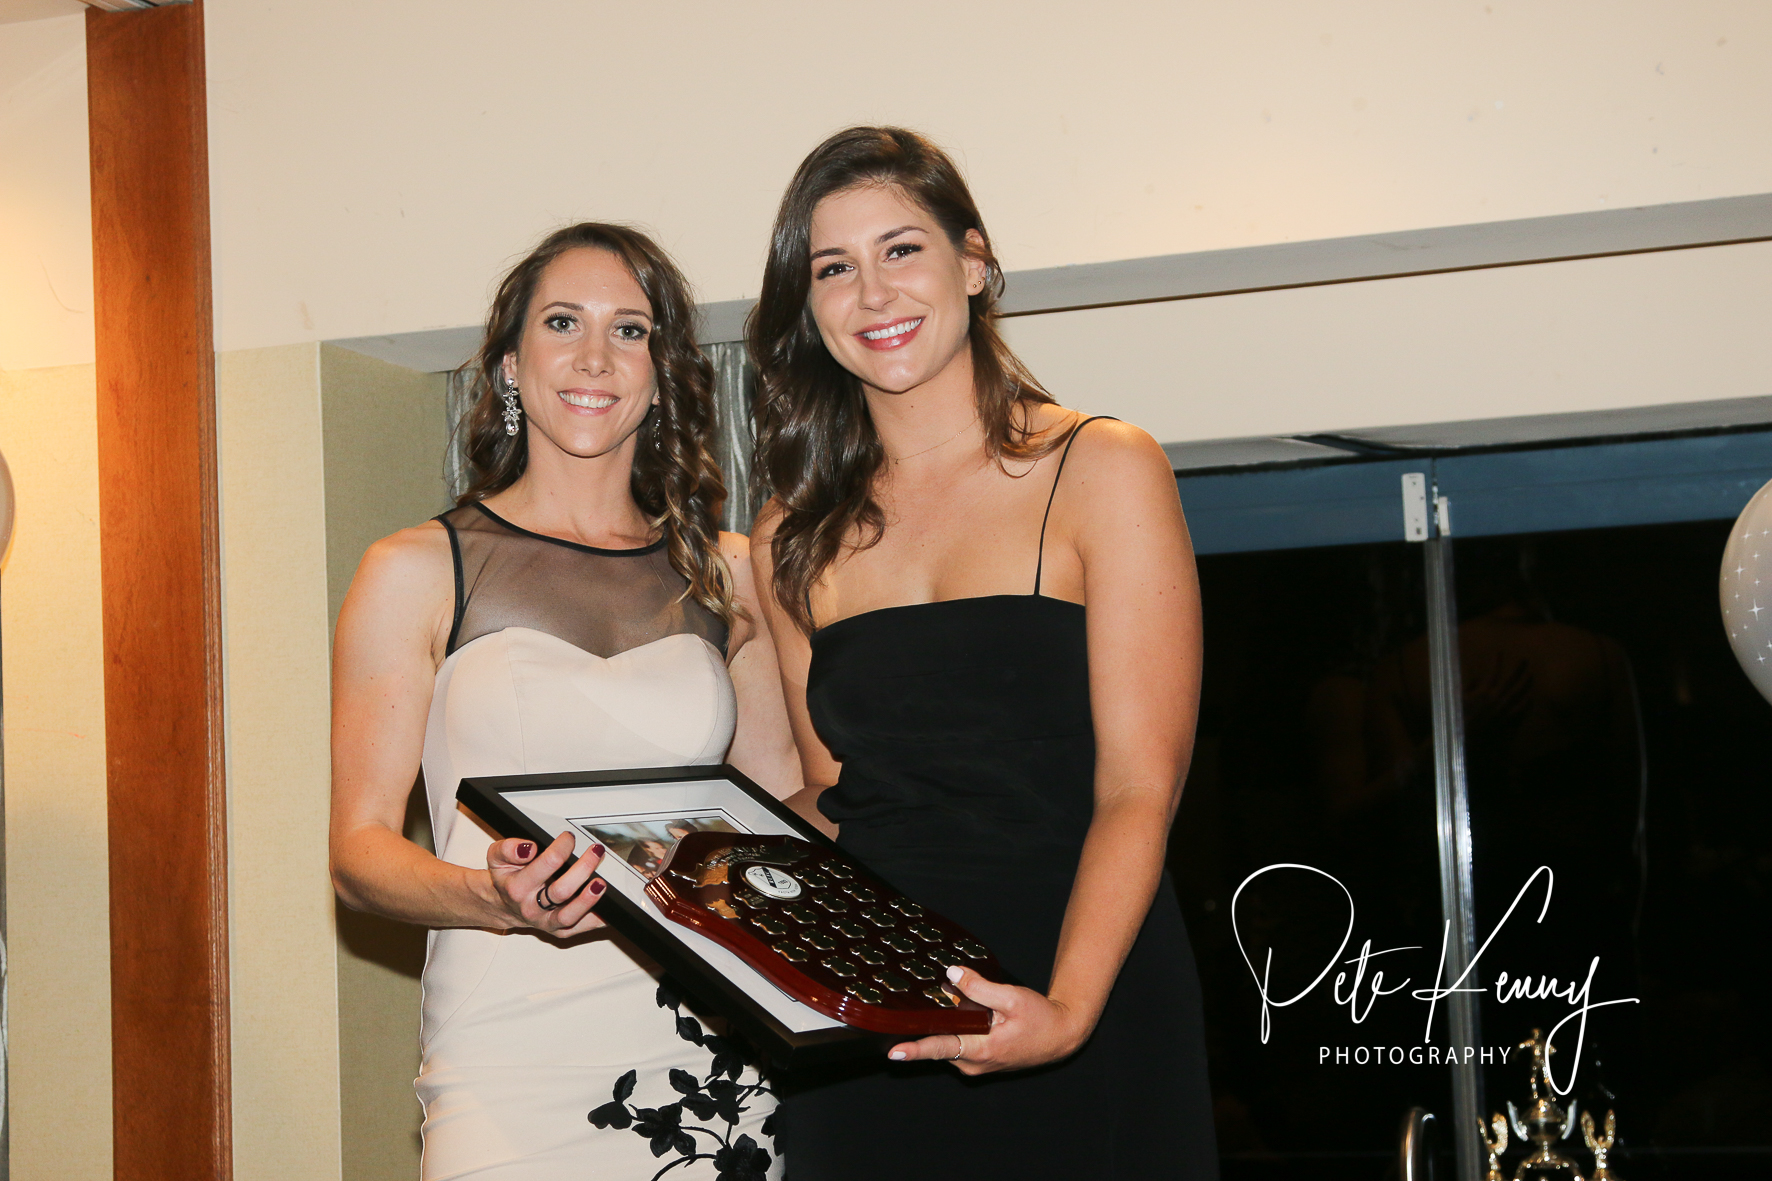 Audrey Legrand (L) received the Women's 1st Grade Players Player for the second year in a row, with Lauren Salmon, Vice Chair of Women's Rugby.